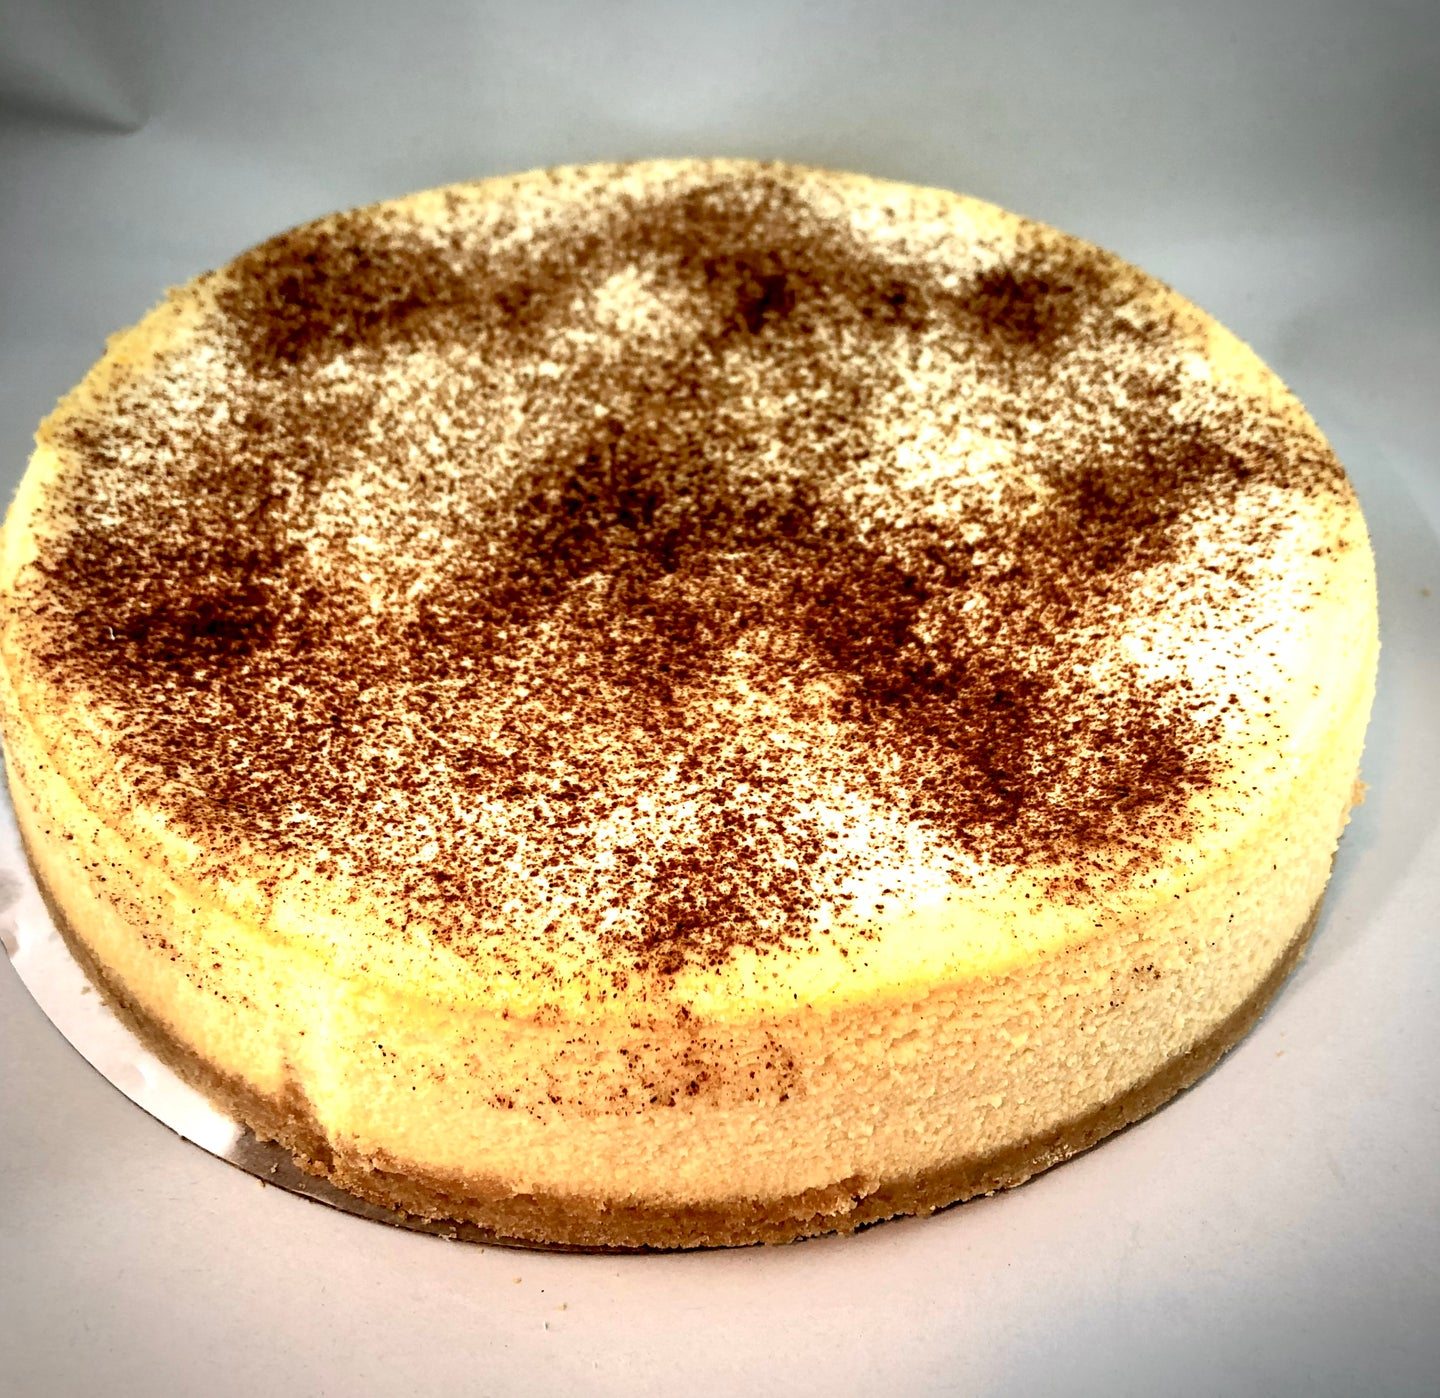 New York Cheesecake - baked